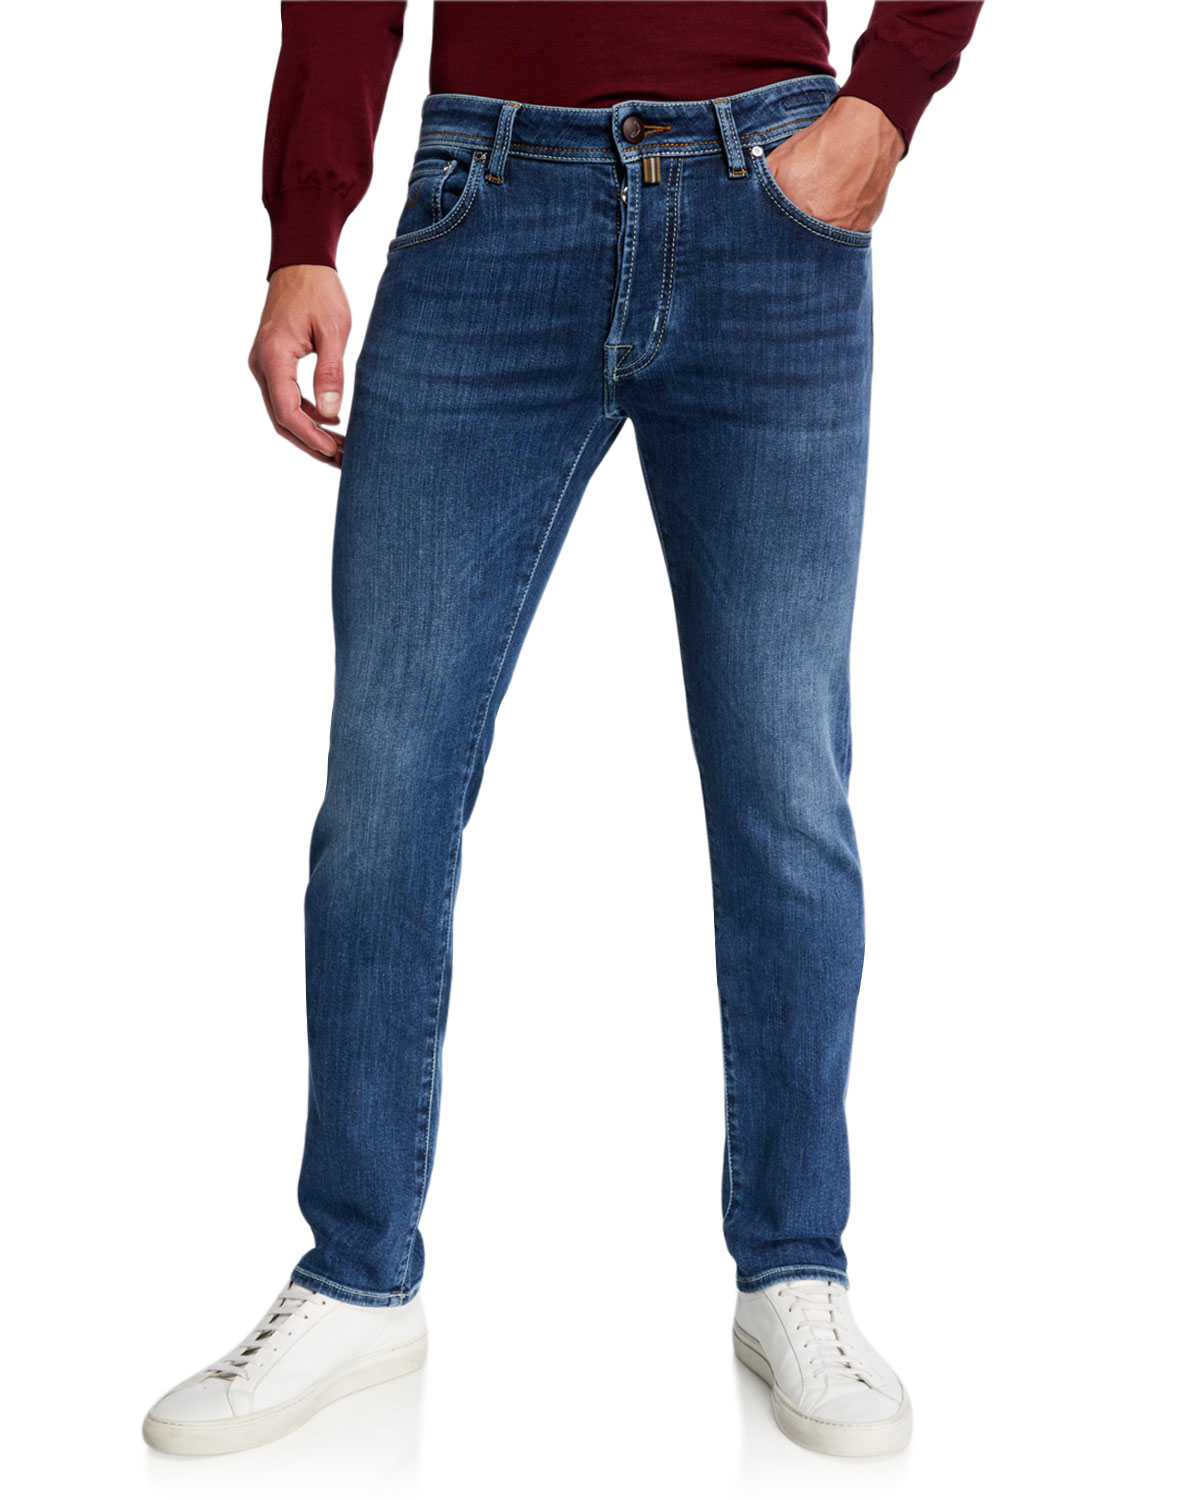 Jacob Cohen Jeans MEN'S MEDIUM-WASH SLIM STRETCH-DENIM JEANS